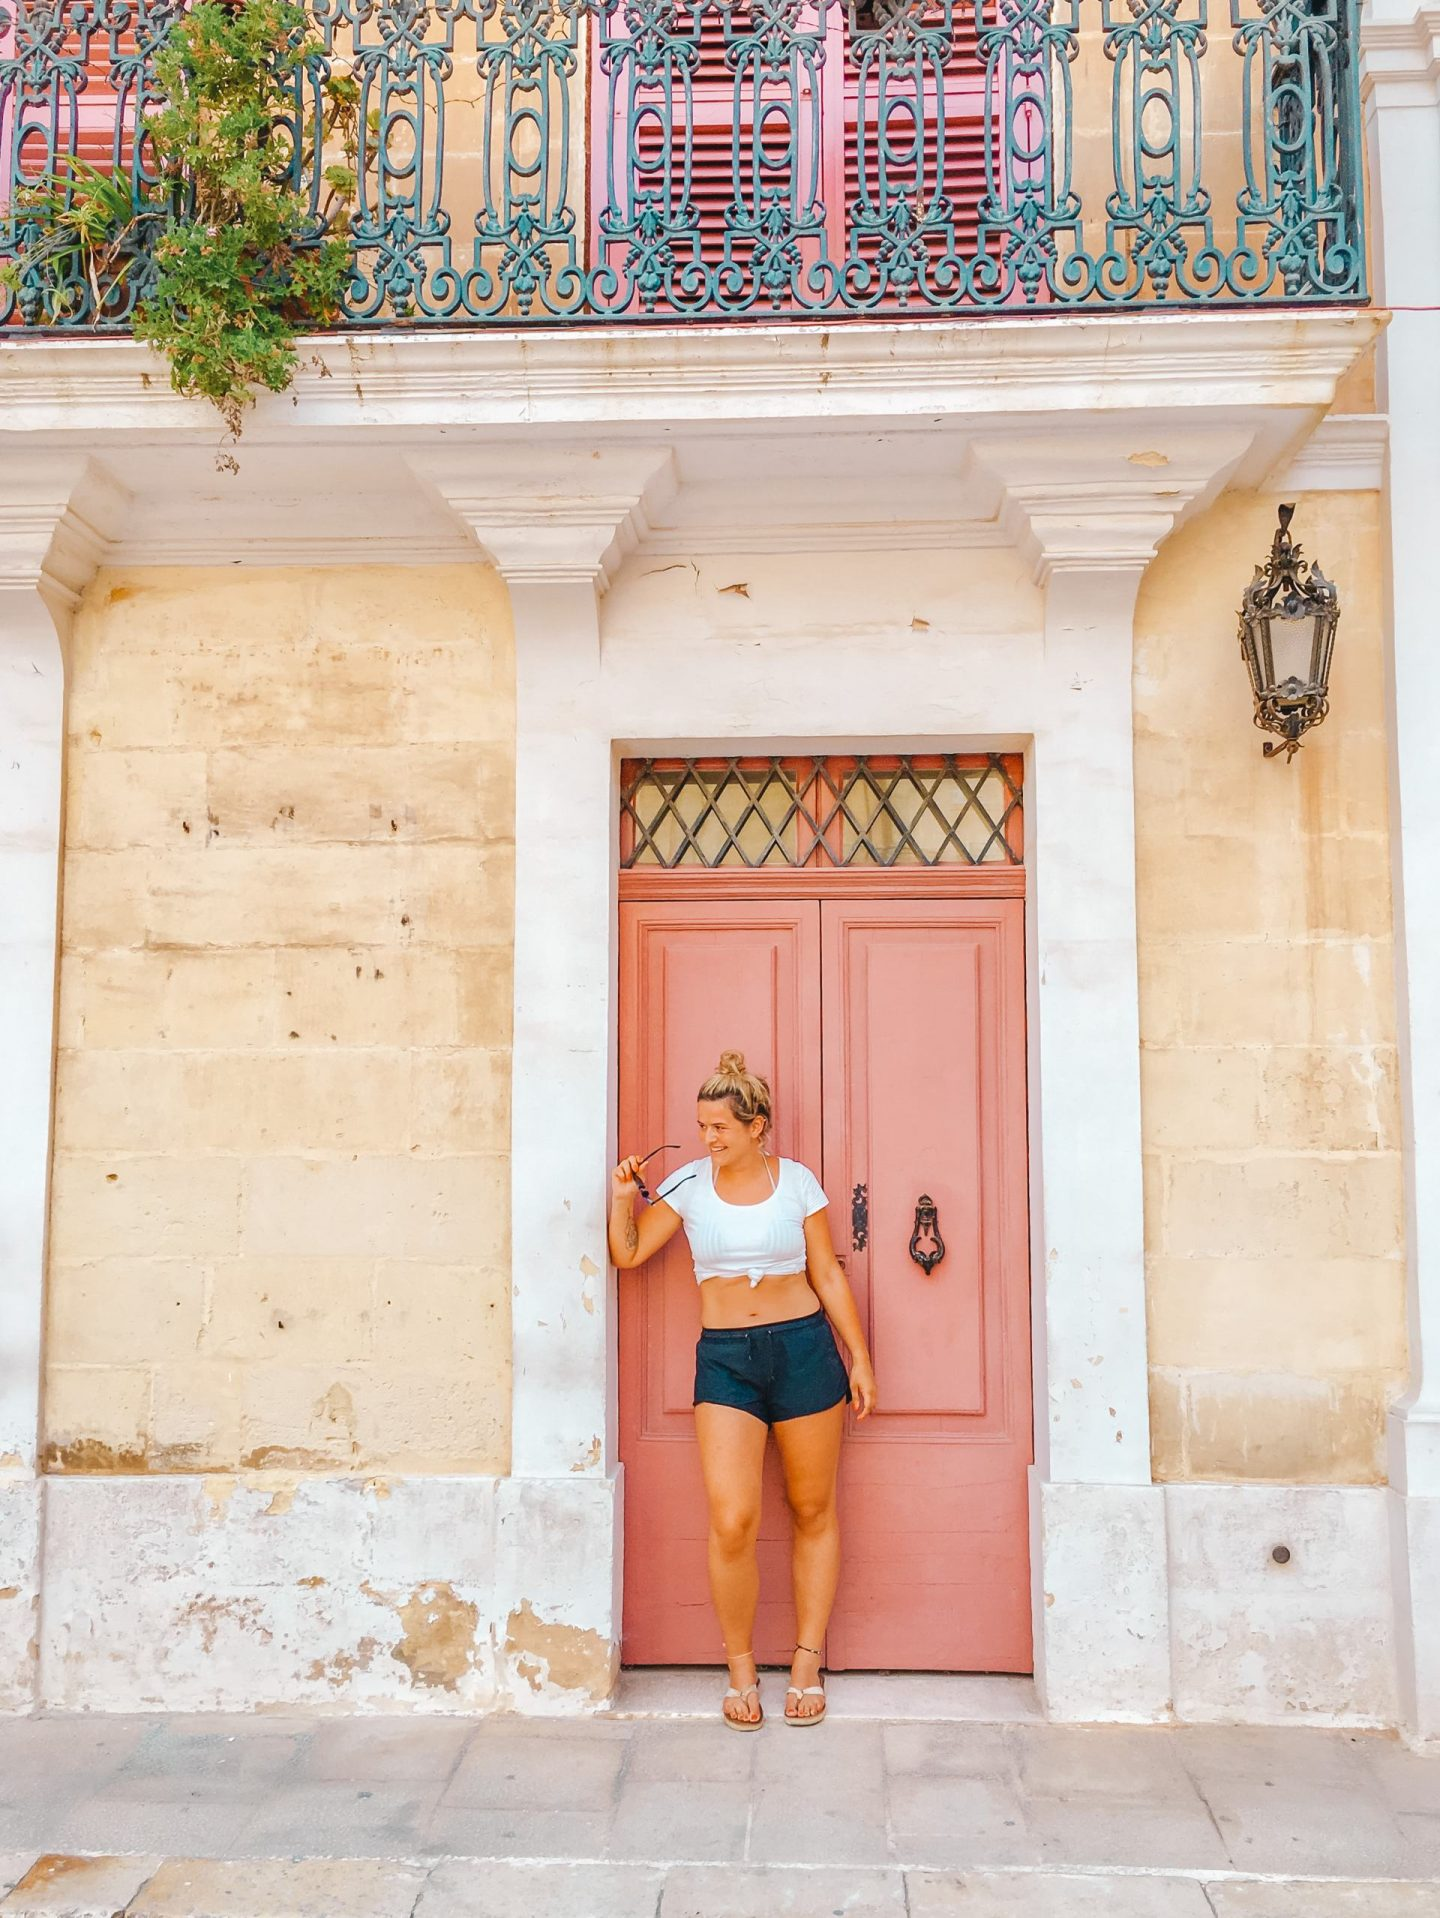 10 BEST THINGS TO DO IN MALTA